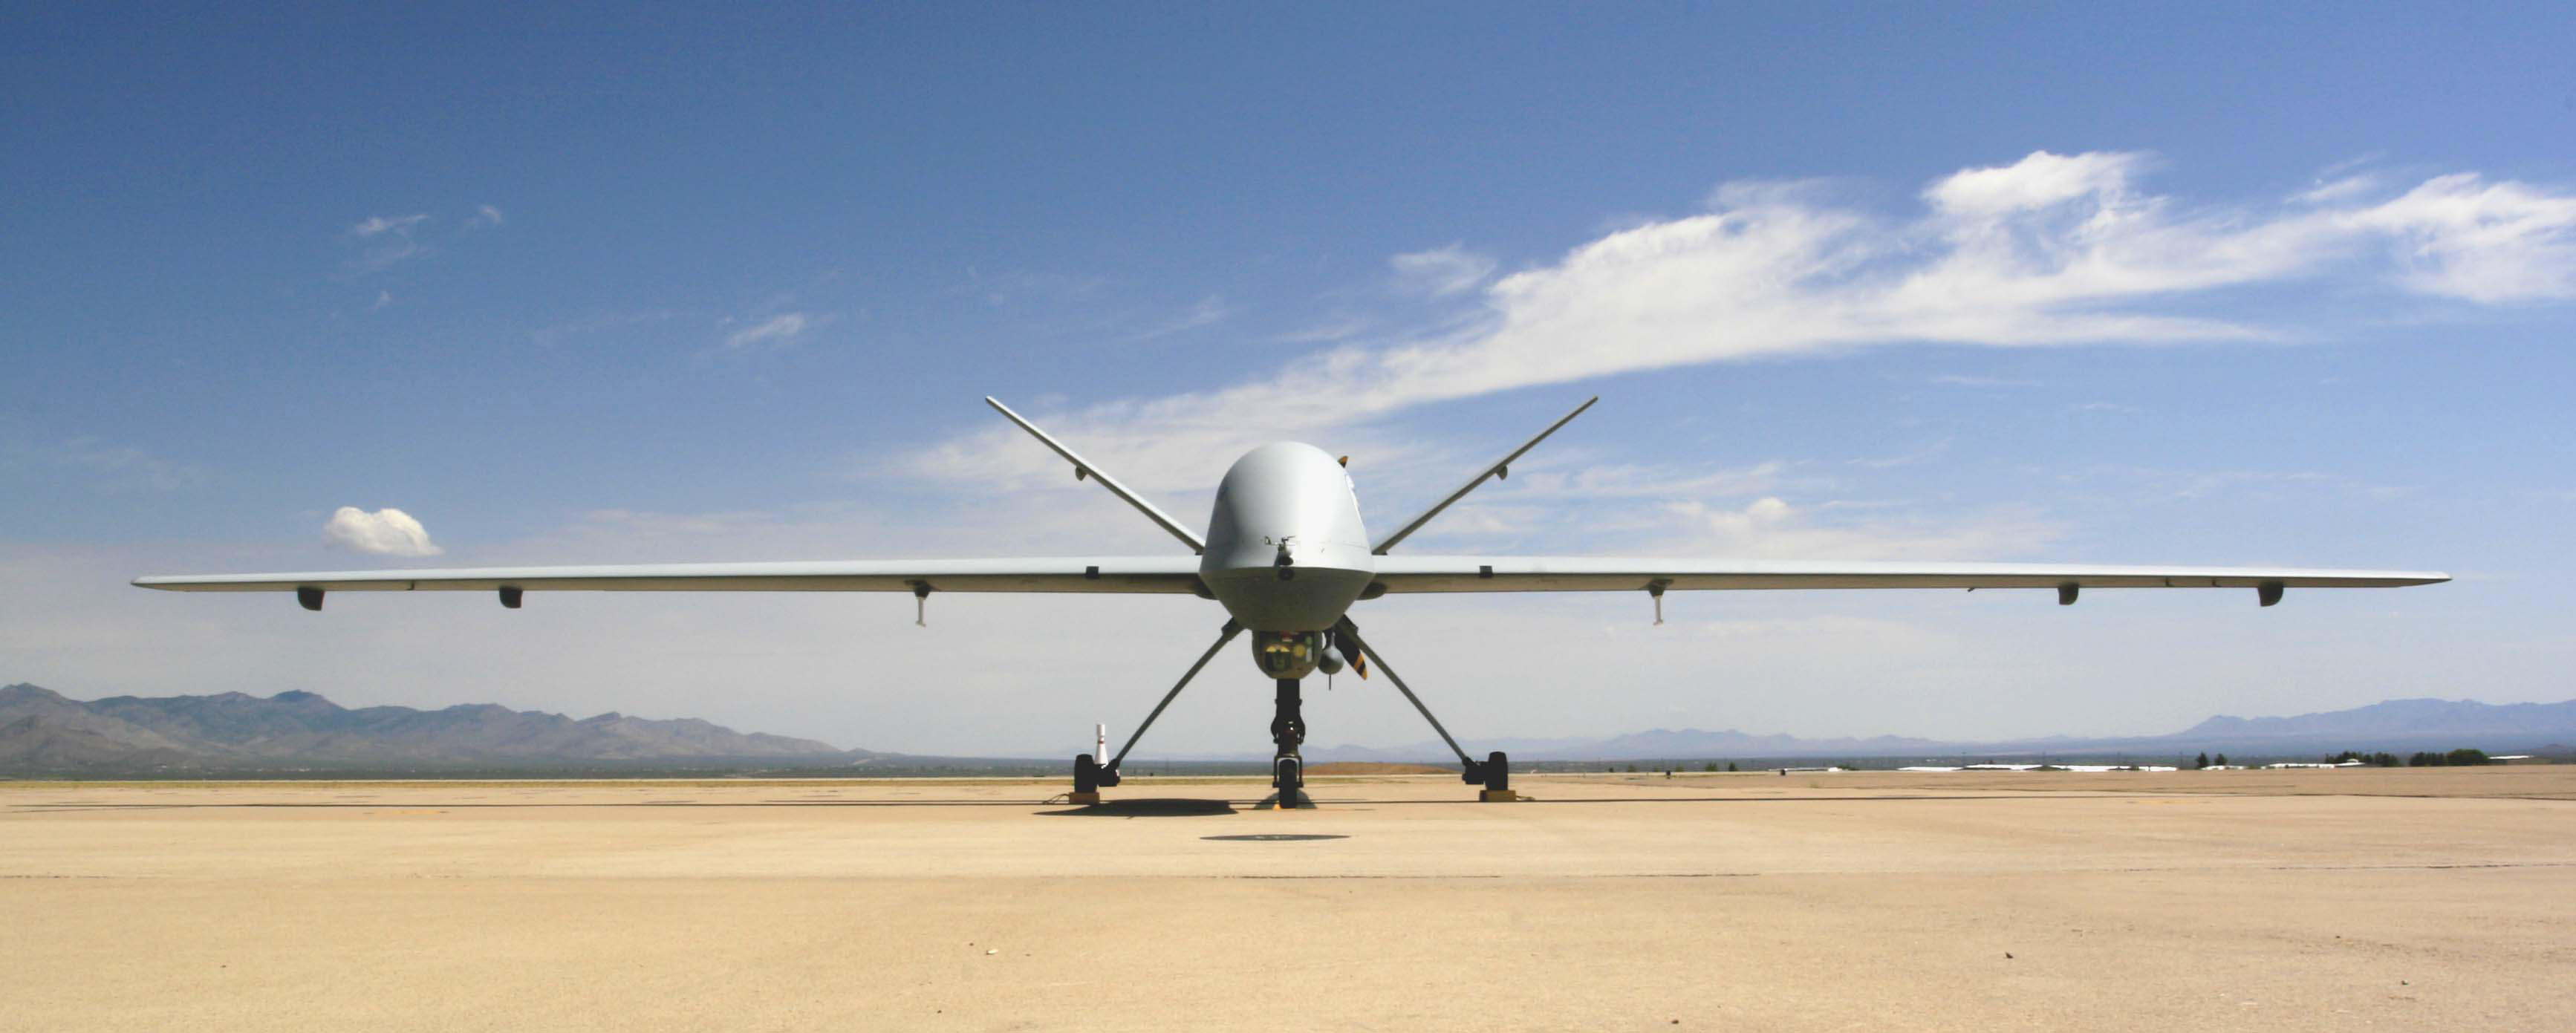 A Customs and Border Protection drone for patrolling the southern border of the United States.